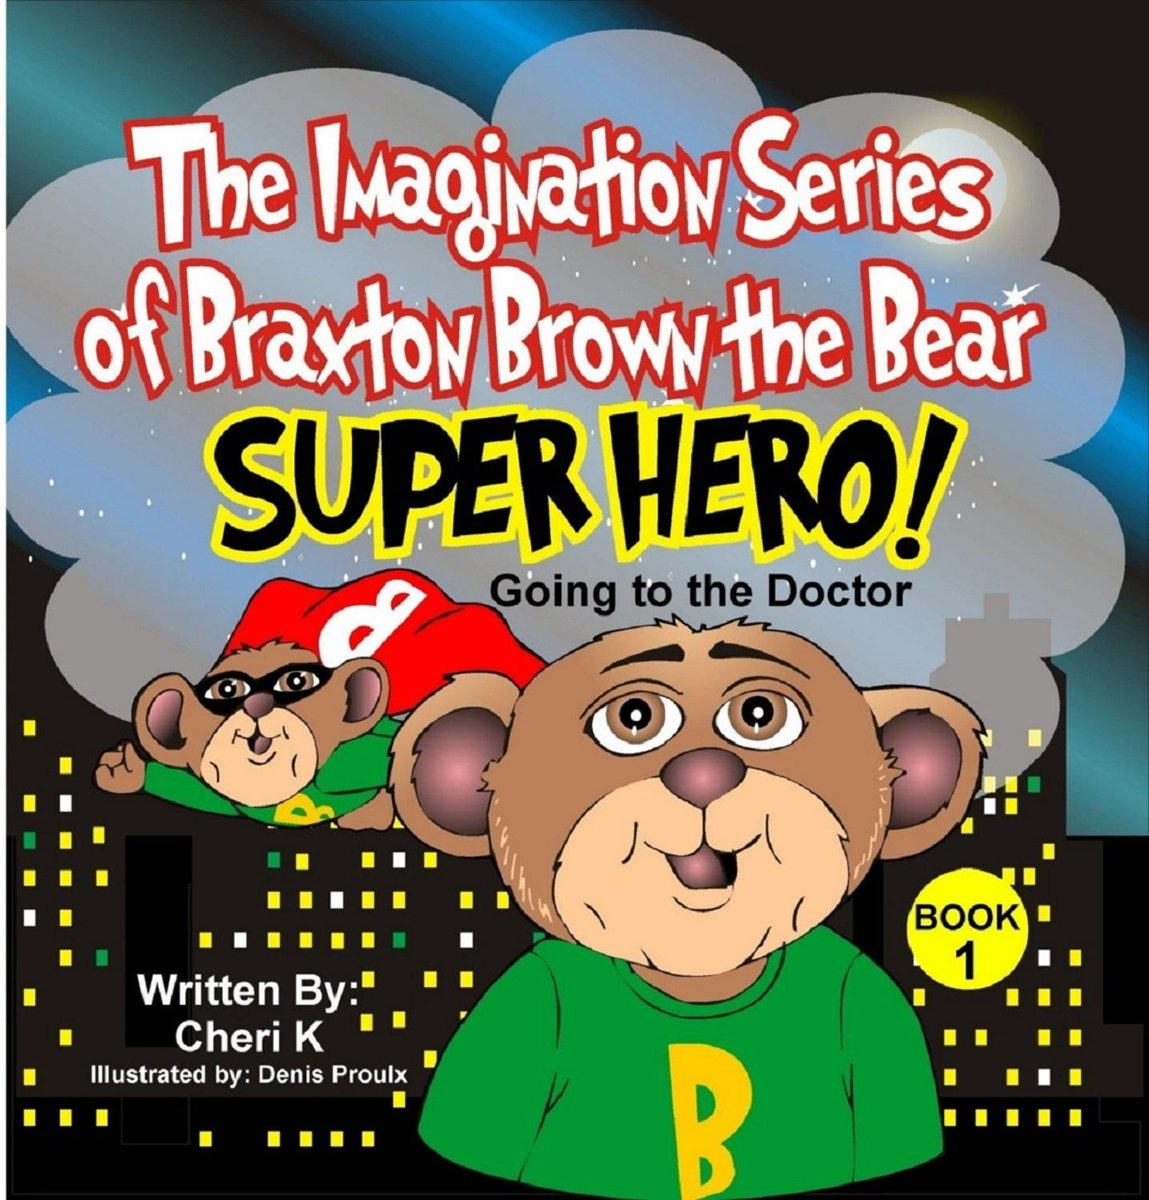 The Imagination Series of Braxton Brown the Bear ''Super Hero''